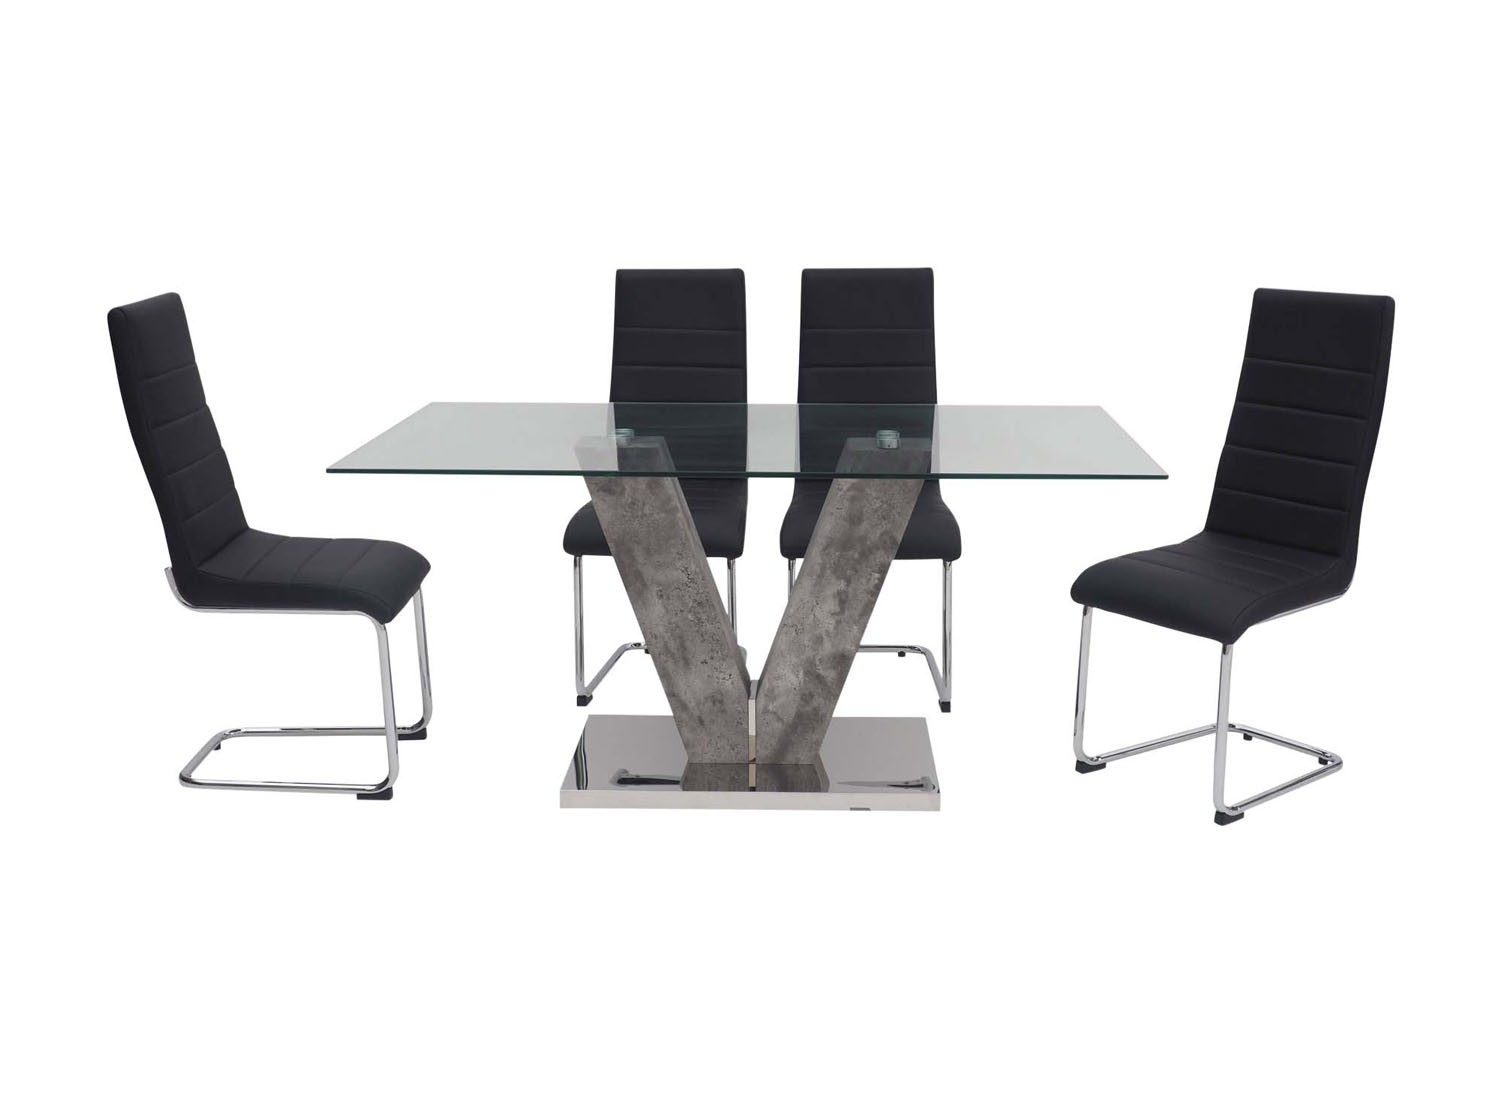 https://www.firstfurniture.co.uk/pub/media/catalog/product/d/o/dolce_dining_table_clear_hugo_chair_black2_1_1_1.jpg